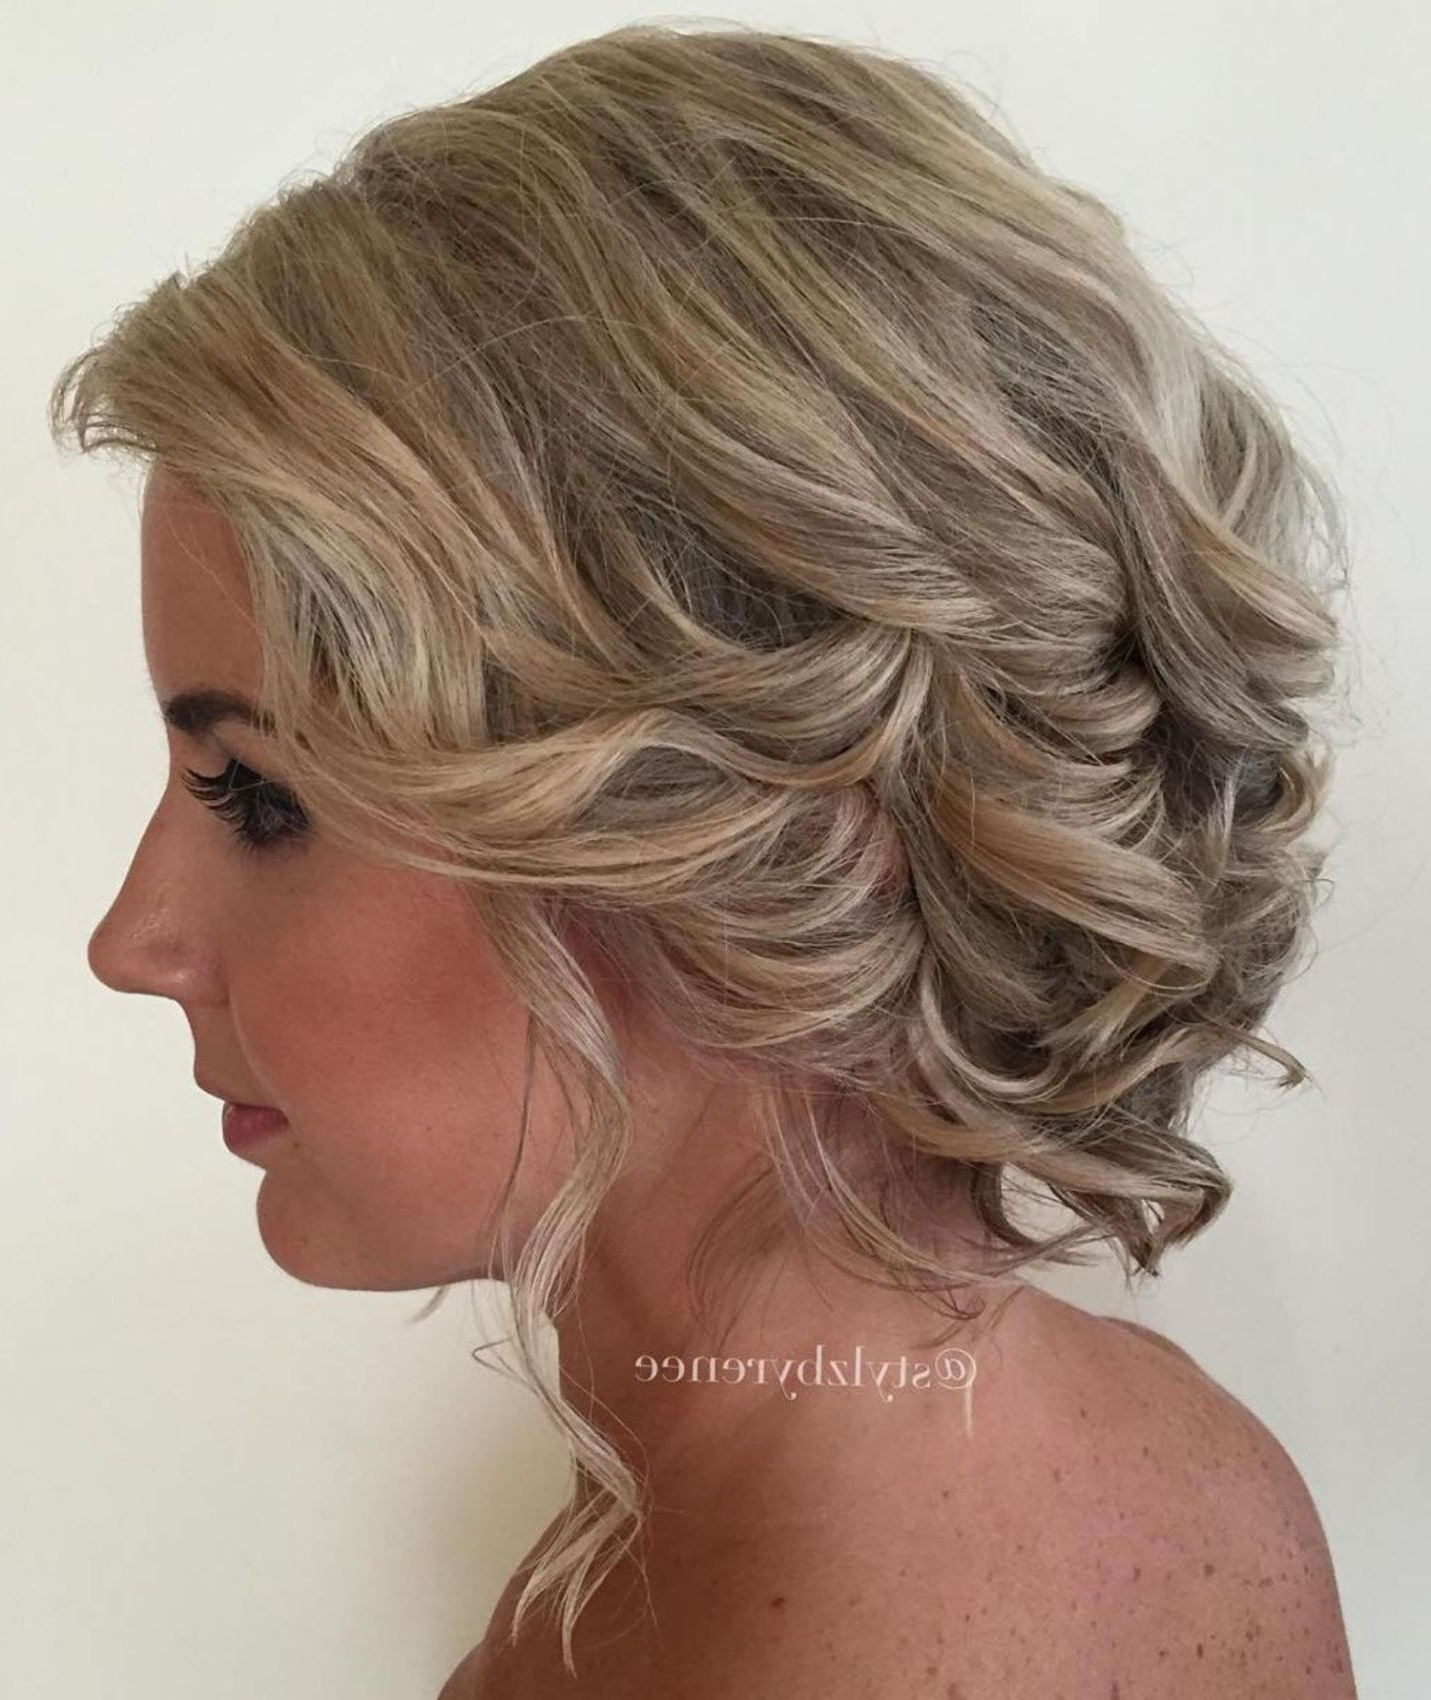 Most Recently Released Short Wedding Hairstyles With A Swanky Headband With Regard To 60 Updos For Short Hair – Your Creative Short Hair Inspiration (View 11 of 20)